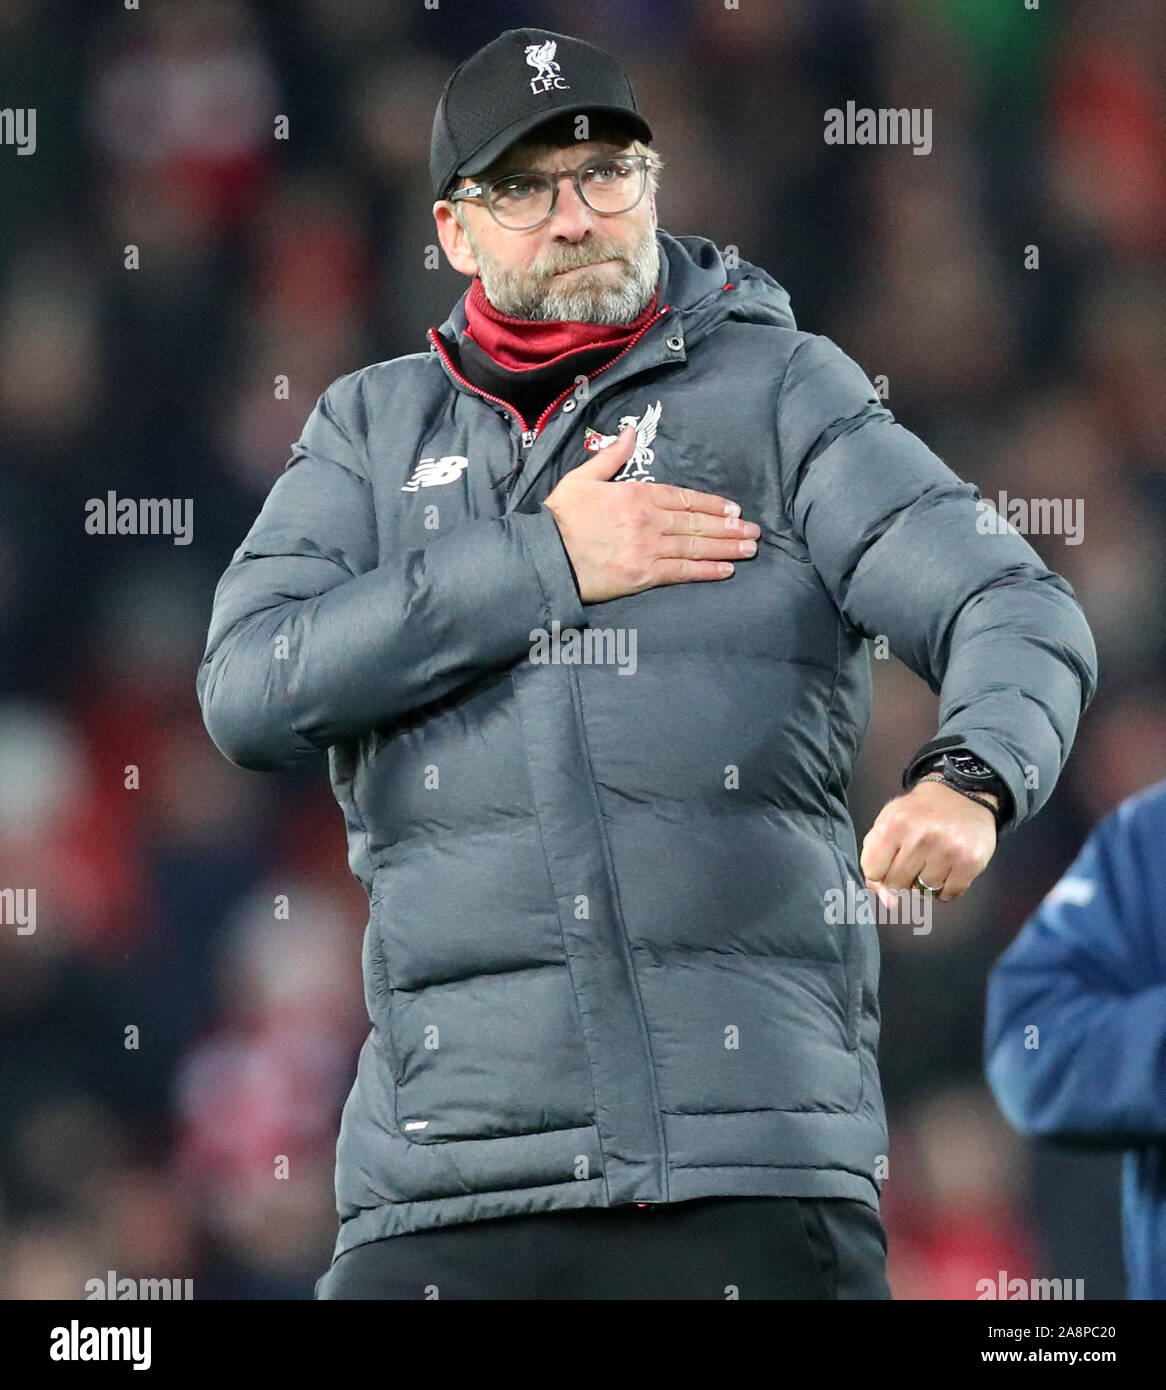 Anfield Liverpool Merseyside Uk 10th Nov 2019 English Premier League Football Liverpool Versus Manchester City Liverpool Manager Jurgen Klopp Pats The Club Crest On His Coat As He Leaves The Pitch After